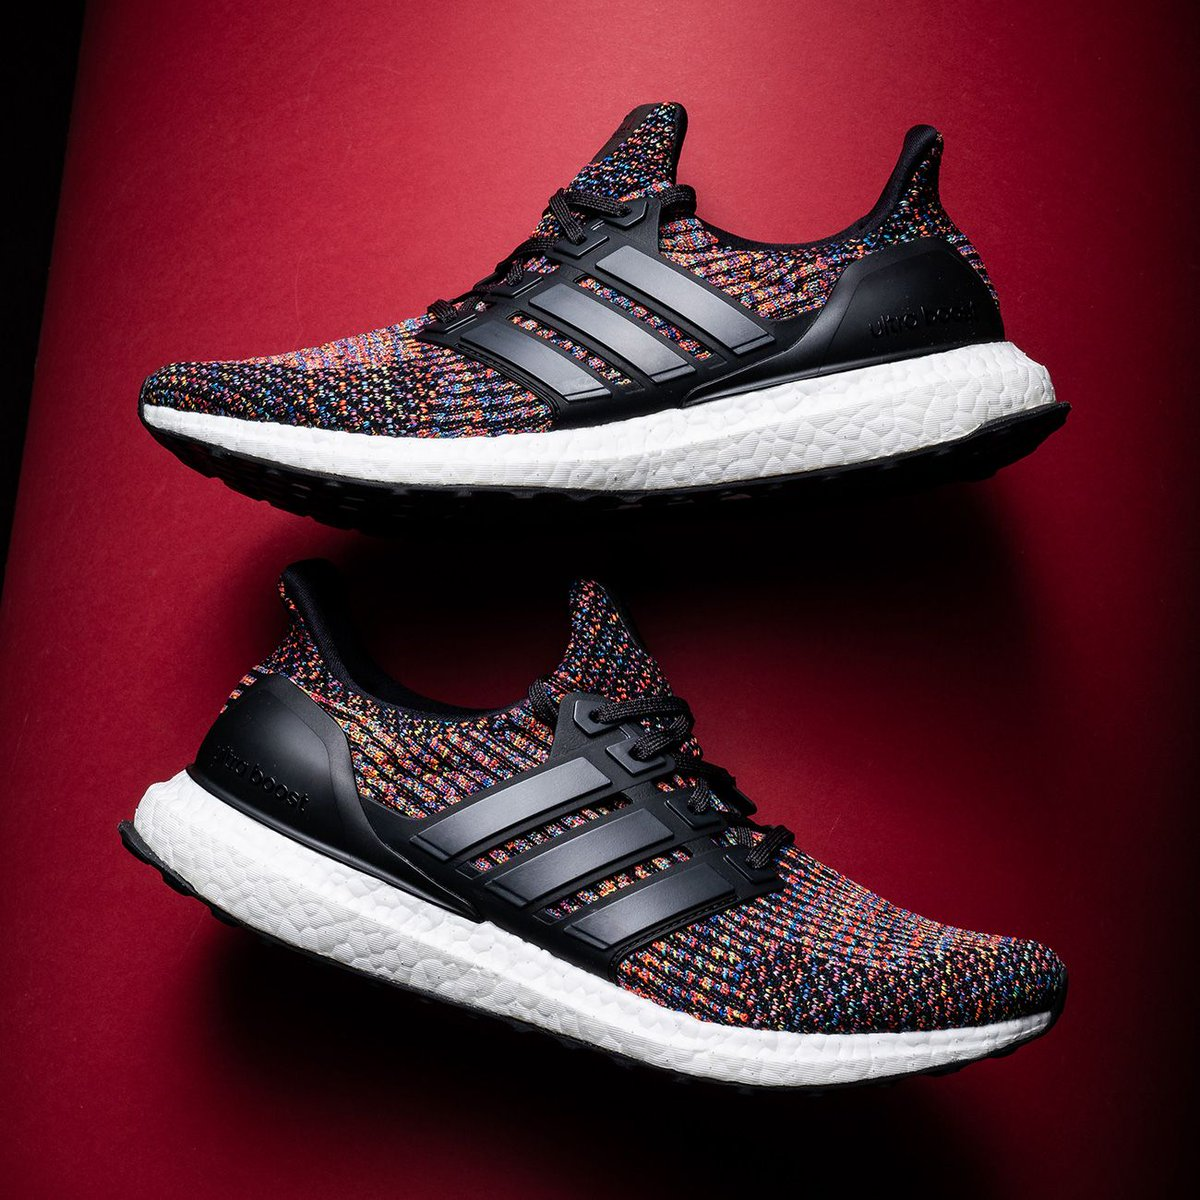 edition of the adidas Ultra Boost is